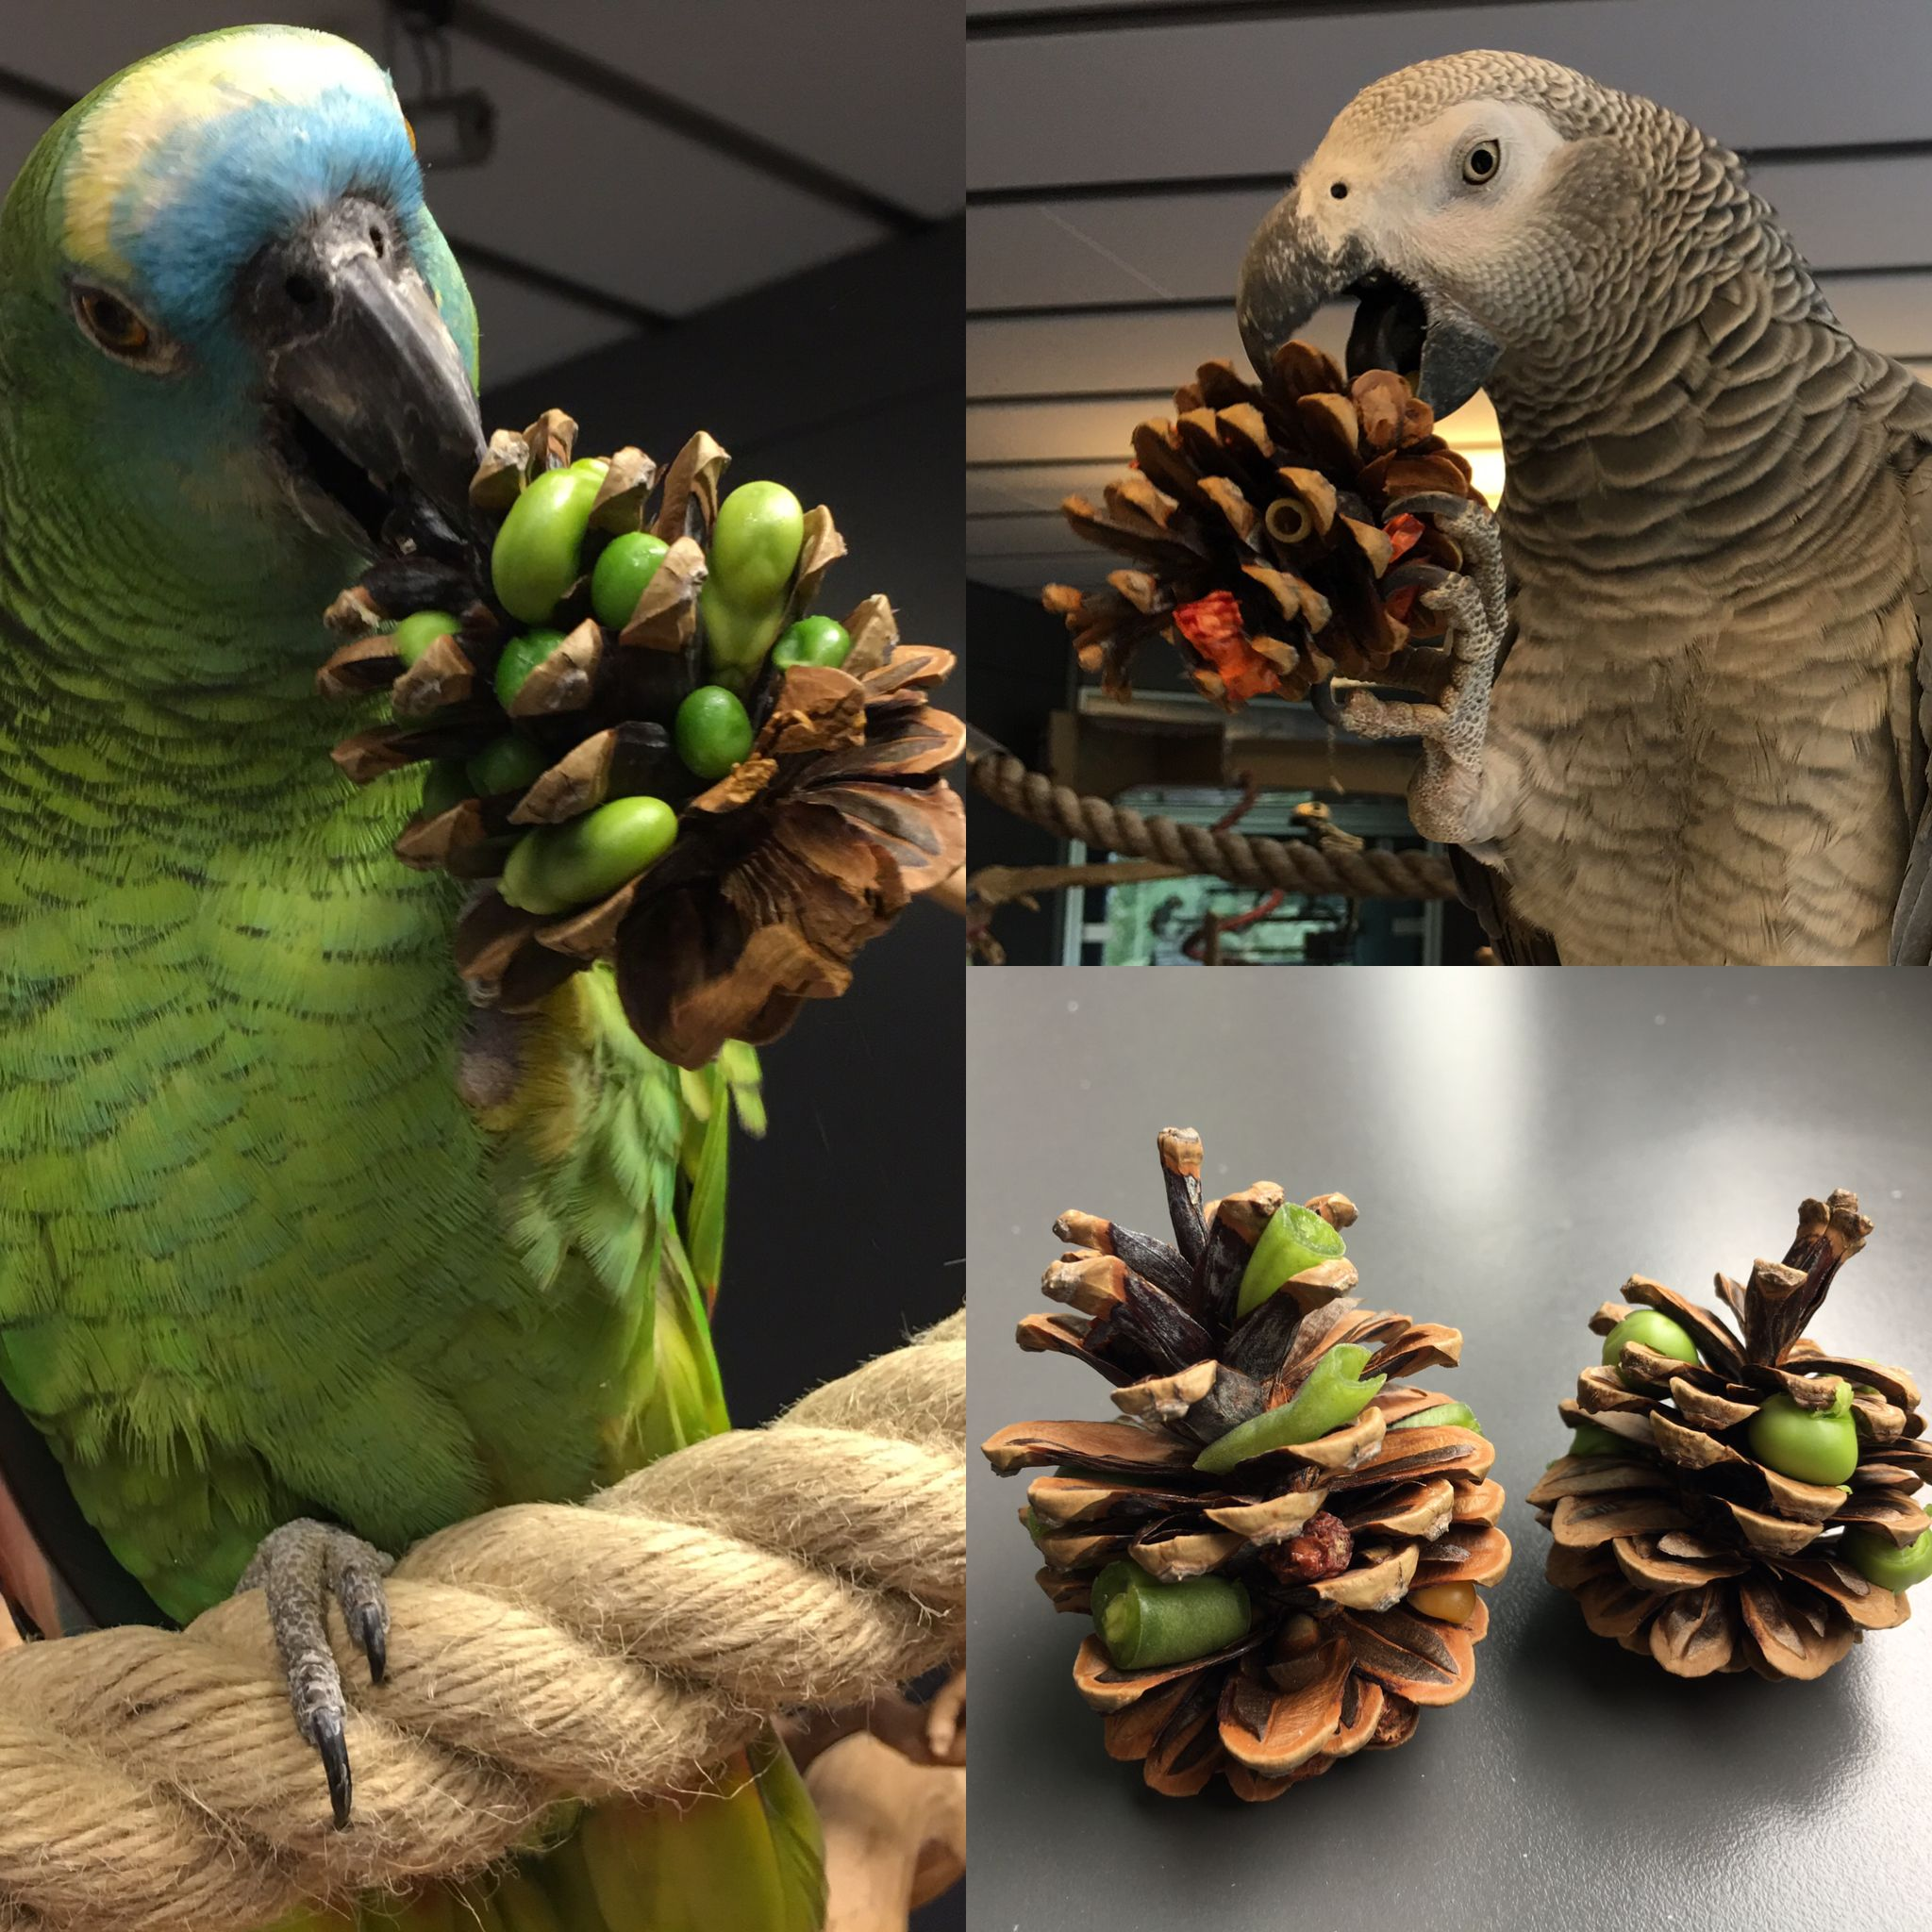 Foraging toys for parrots remarkable idea